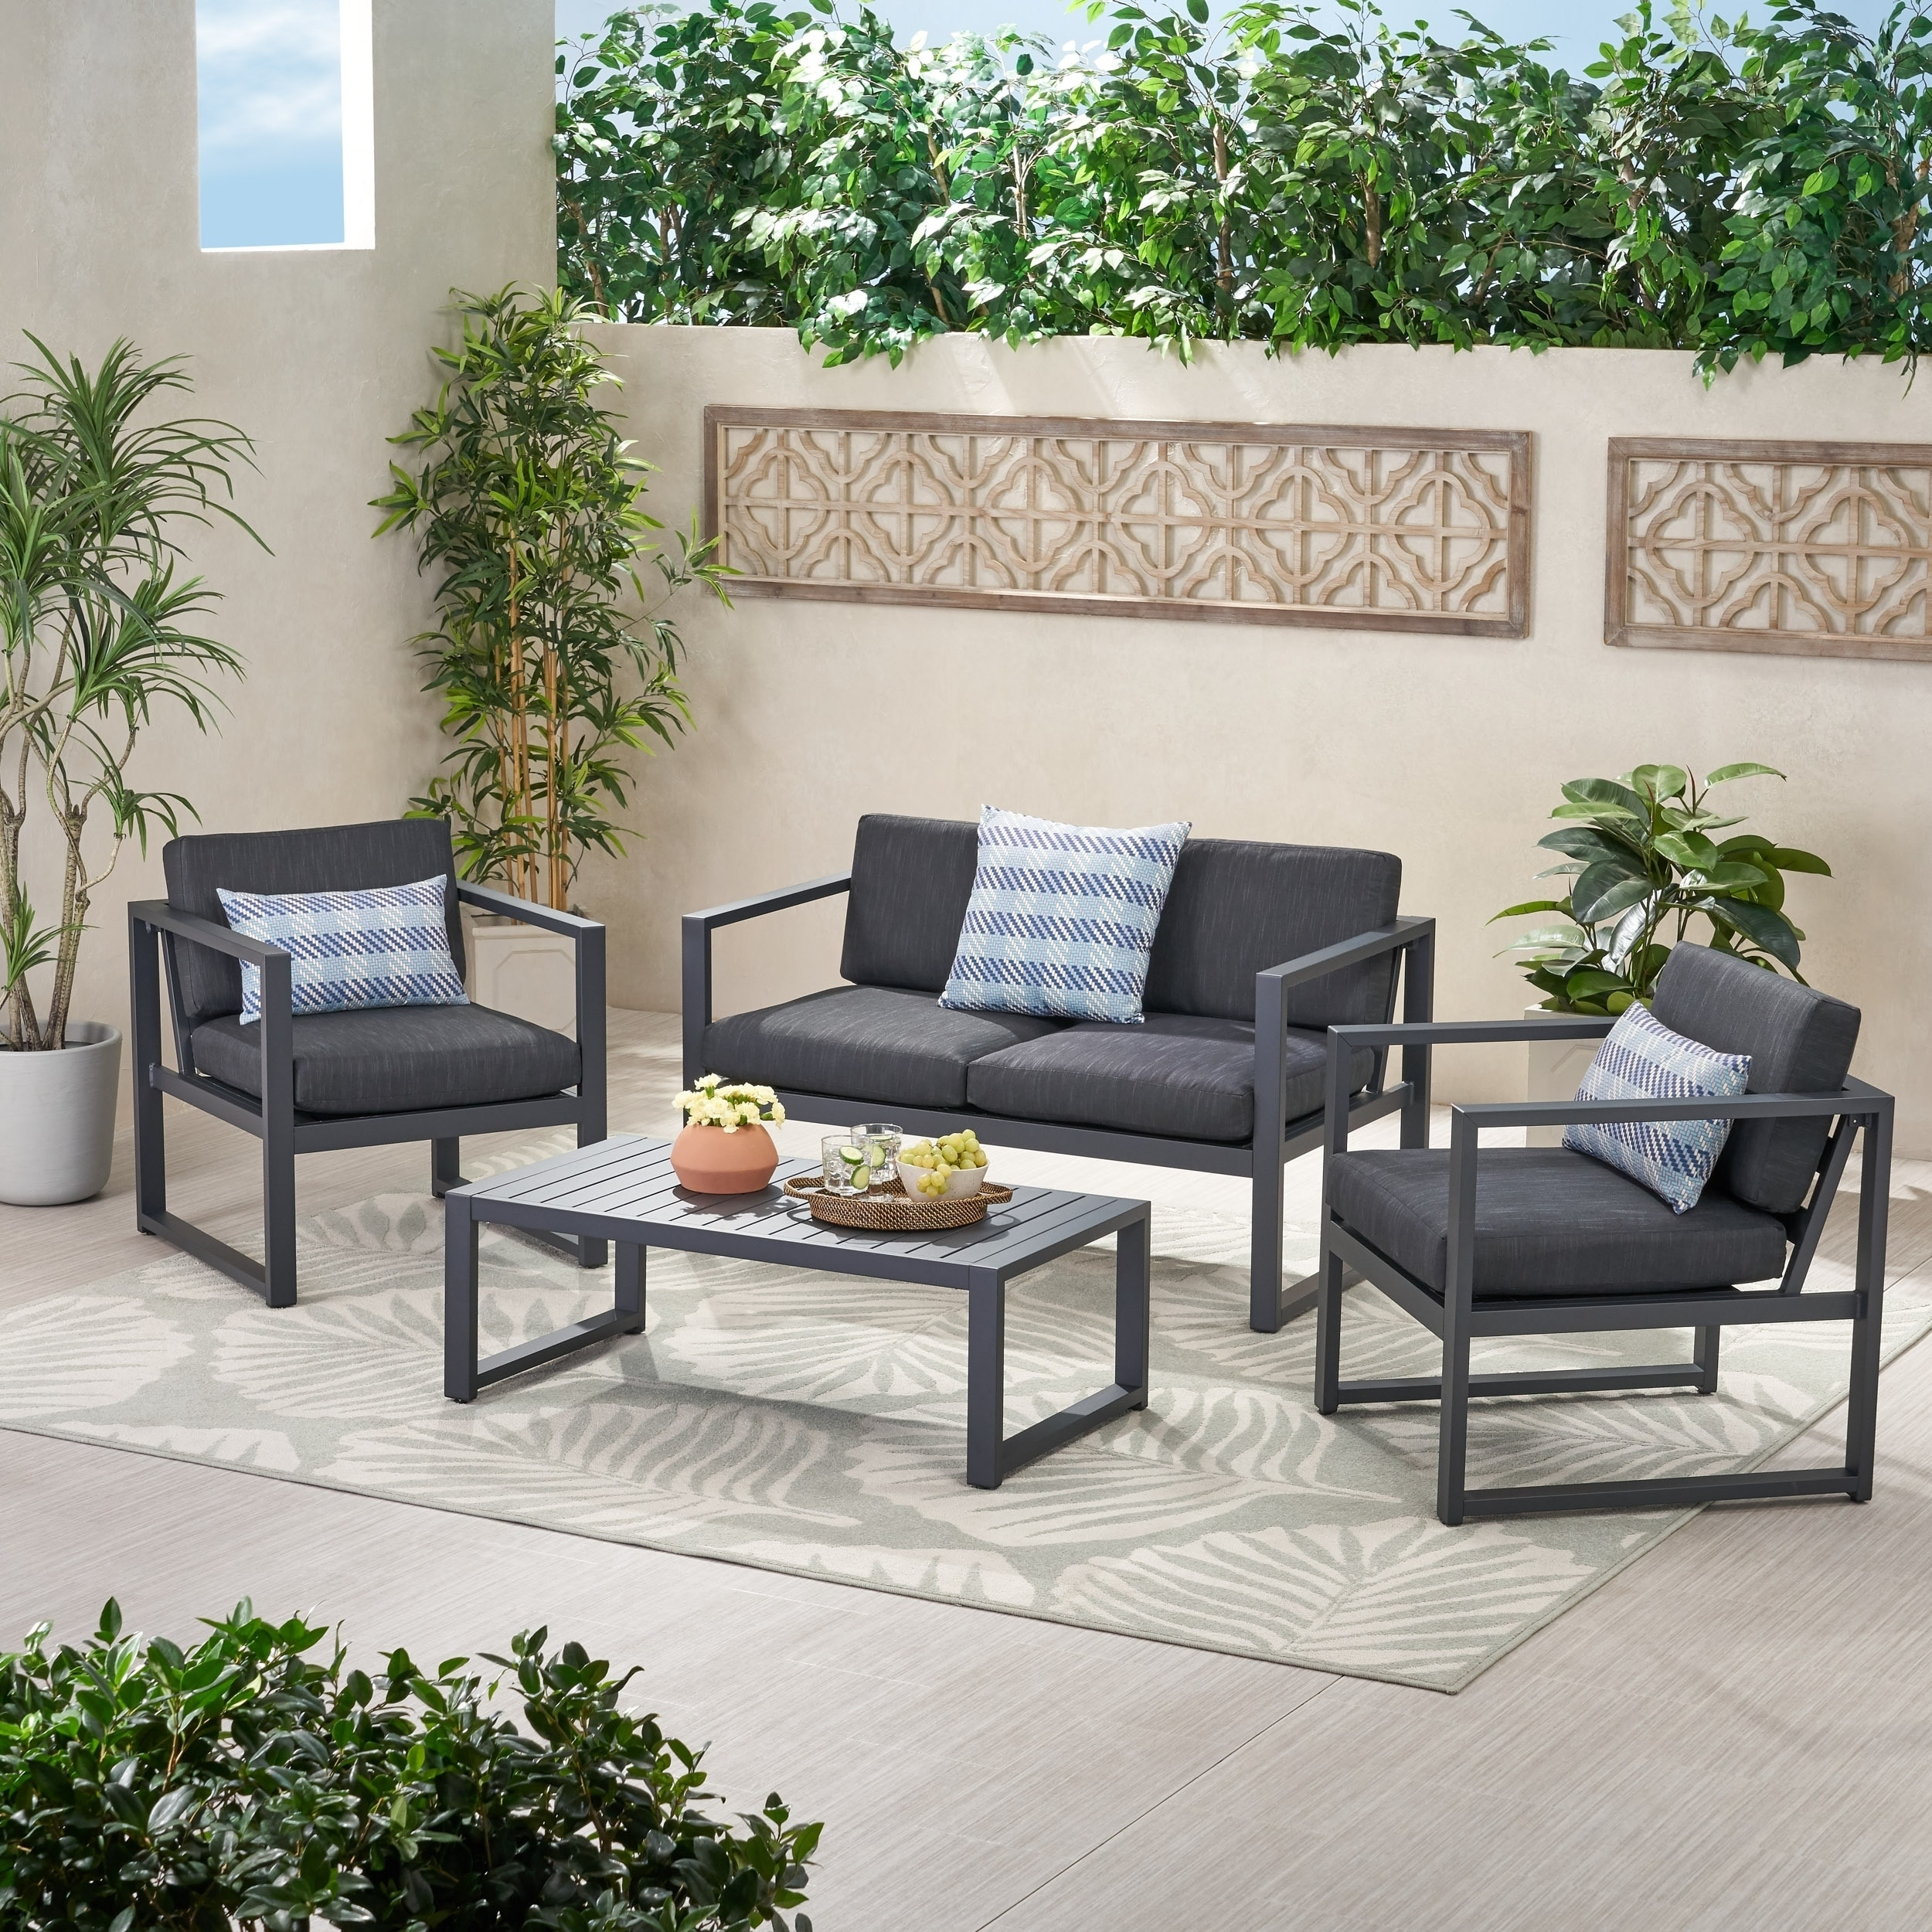 Patio Furniture Table And Chairs Patio Furniture Find Great Outdoor Seating Dining Deals